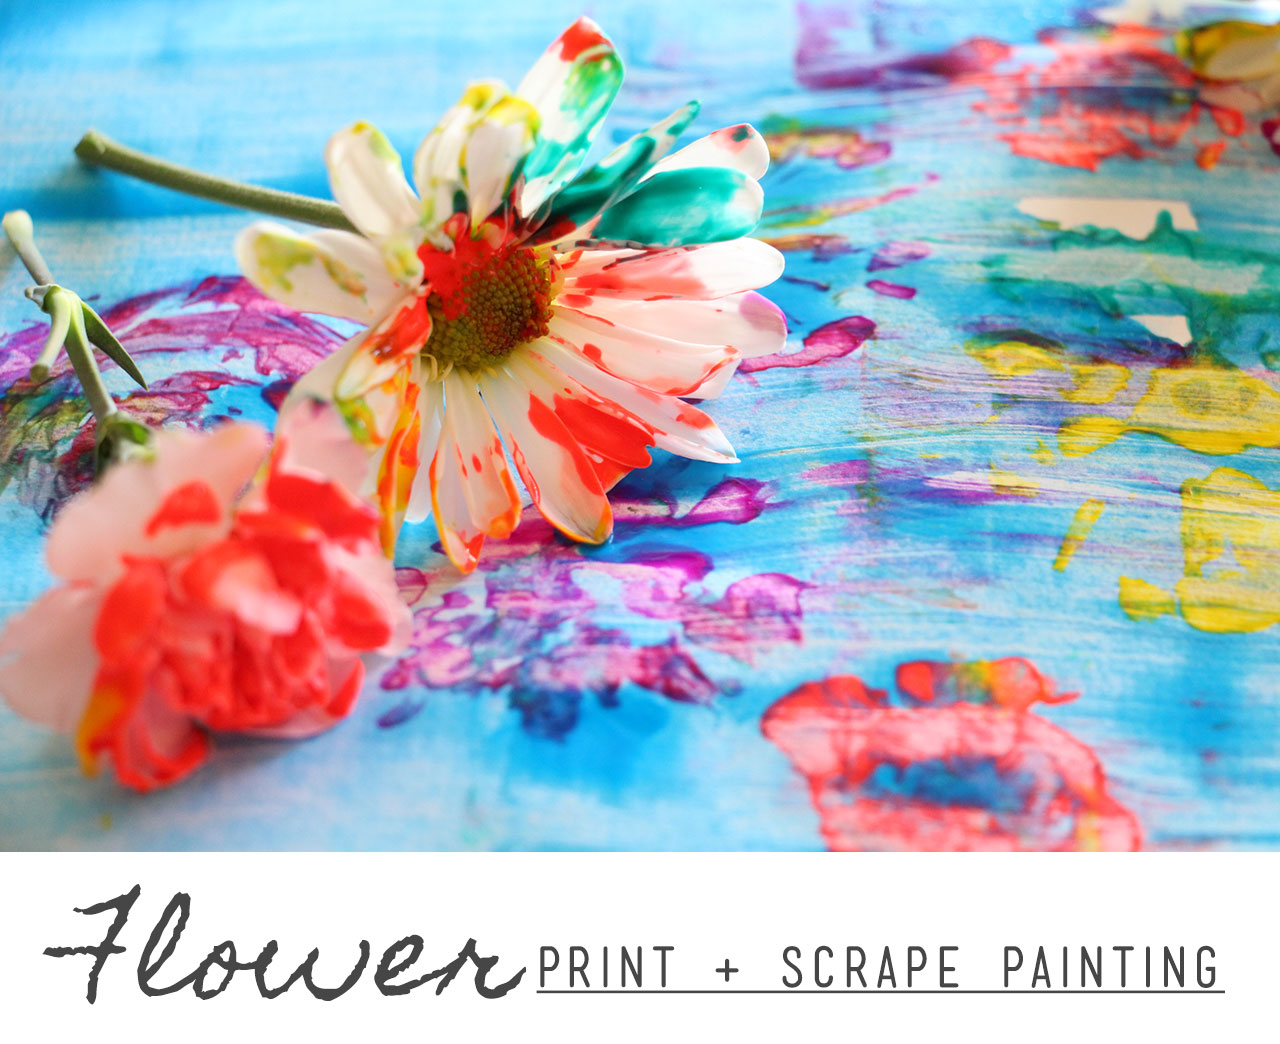 flower print scrape painting u2013 playful learning